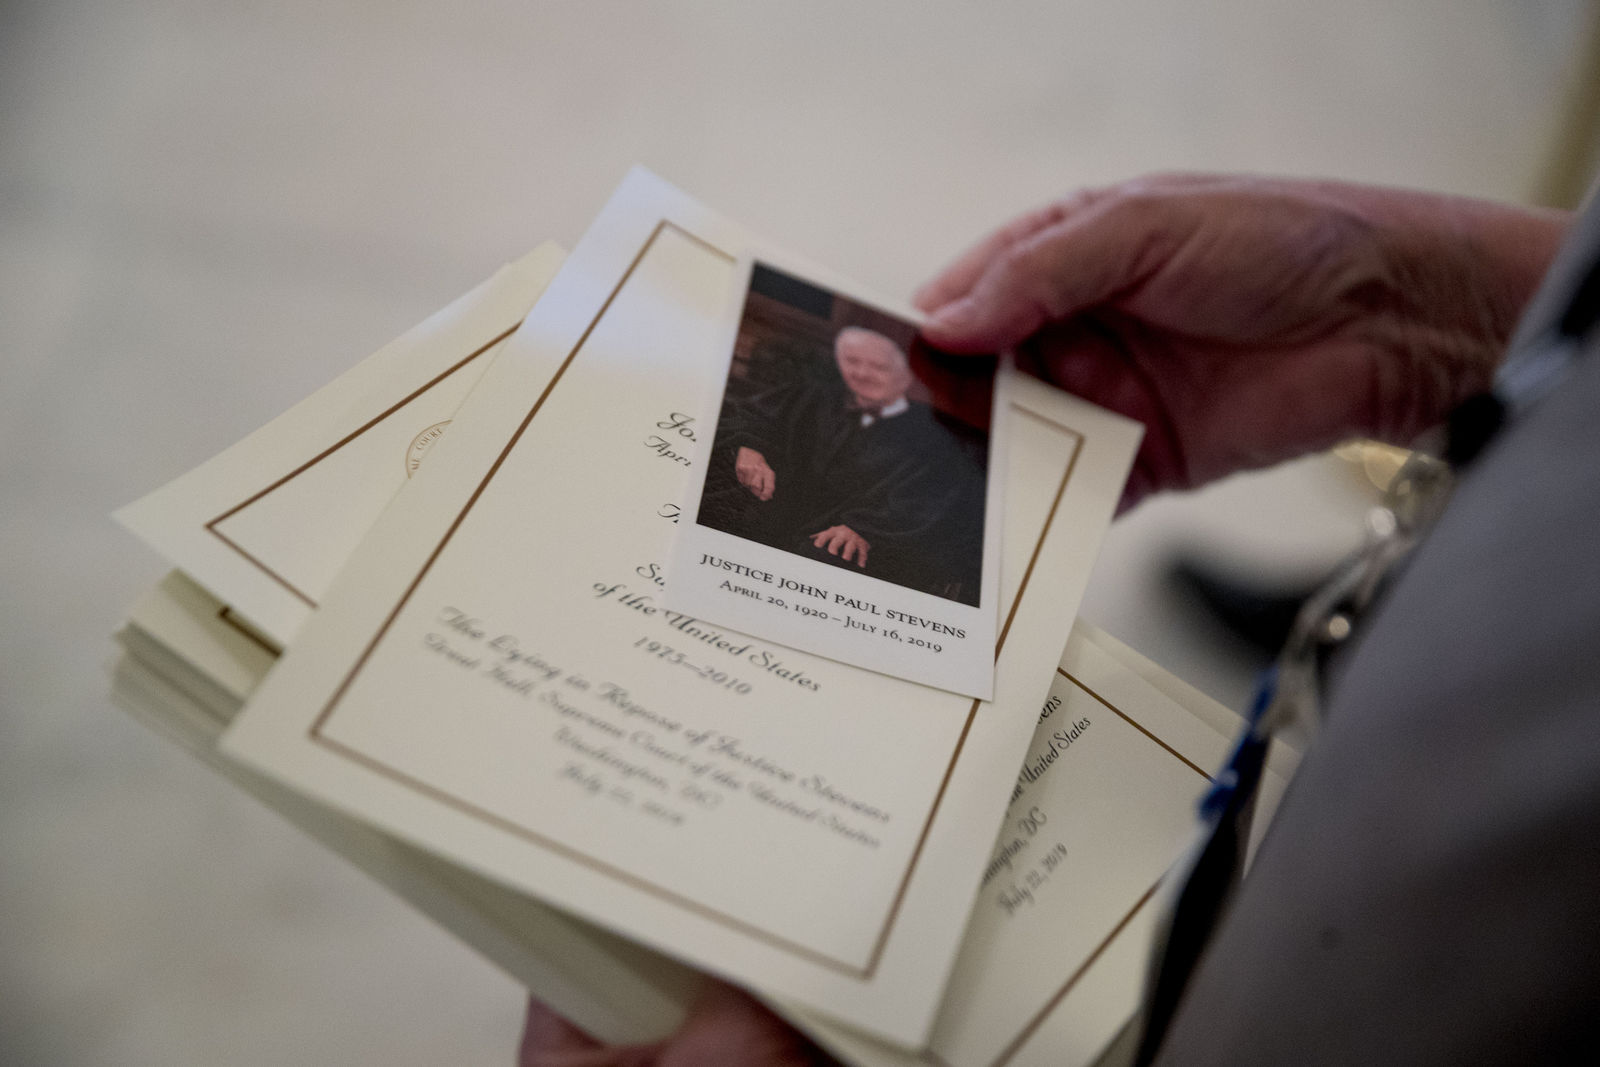 Visitors are handed a photograph and information as they pay their respects for the late Supreme Court Justice John Paul Stevens as he lies in repose in the Great Hall of the Supreme Court in Washington, Monday, July 22, 2019. (AP Photo/Andrew Harnik)